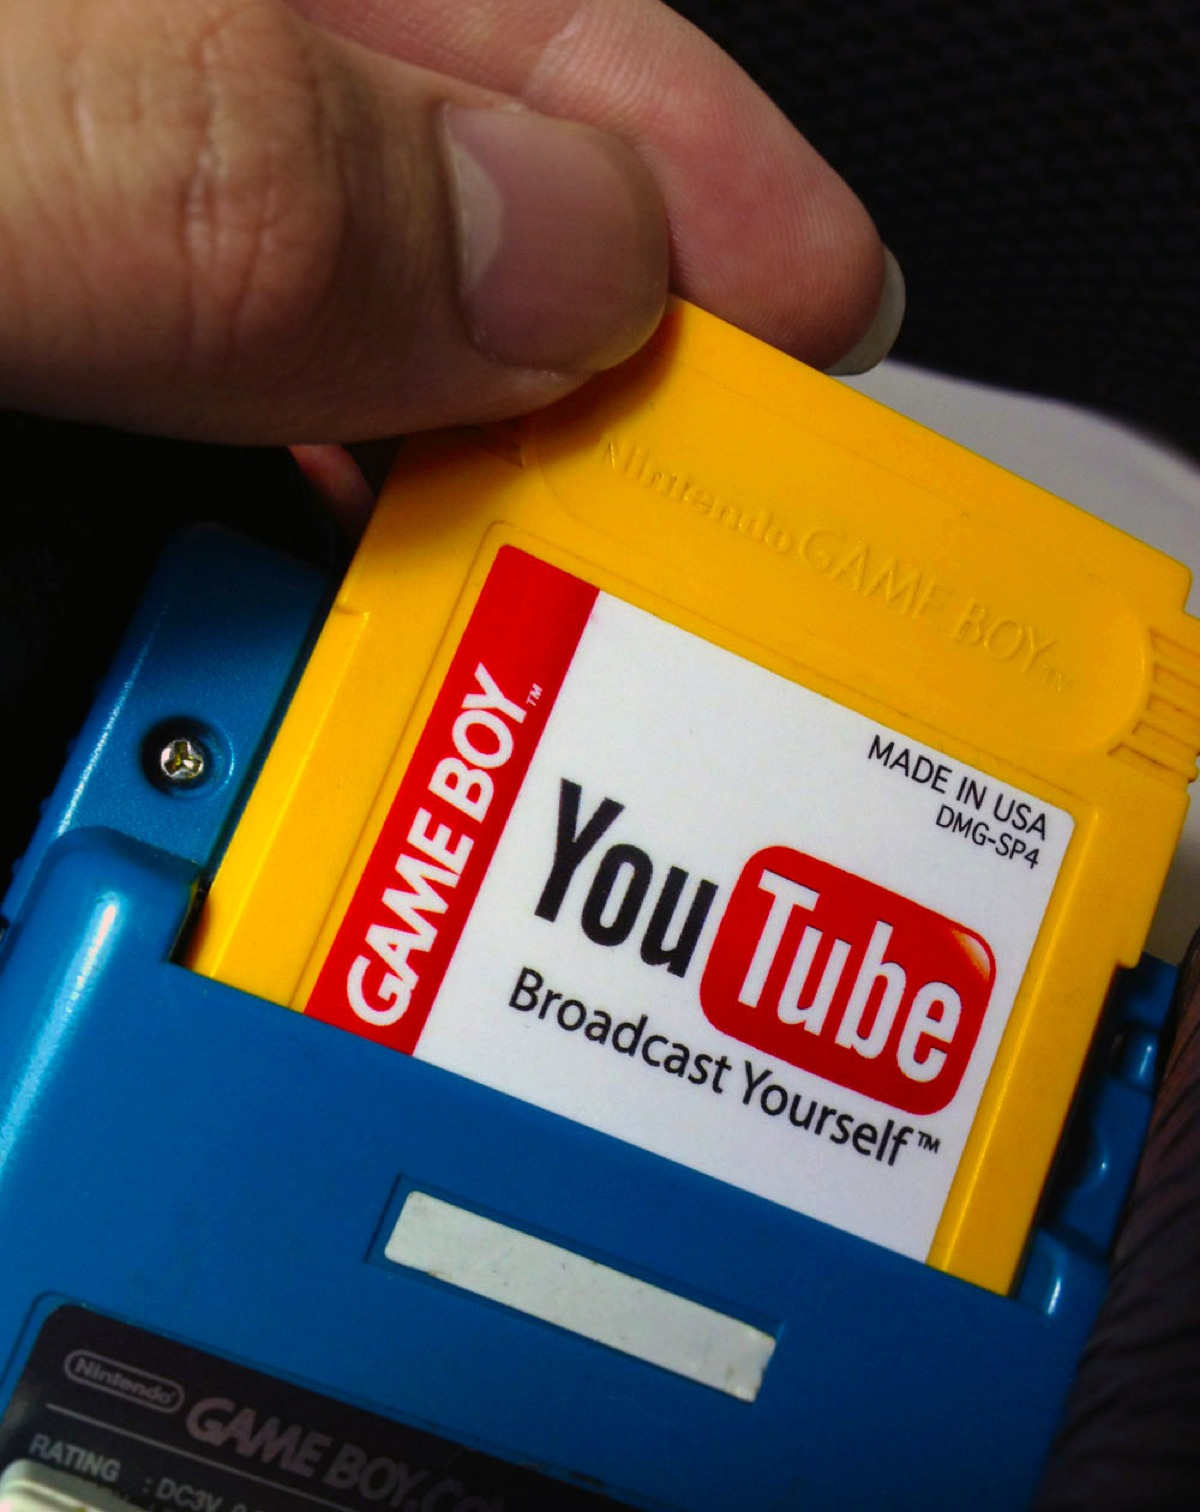 Youtube Gaming L Application Enfin Disponible En France: YouTube, SoundCloud, Skype, And Apple As Game Boy